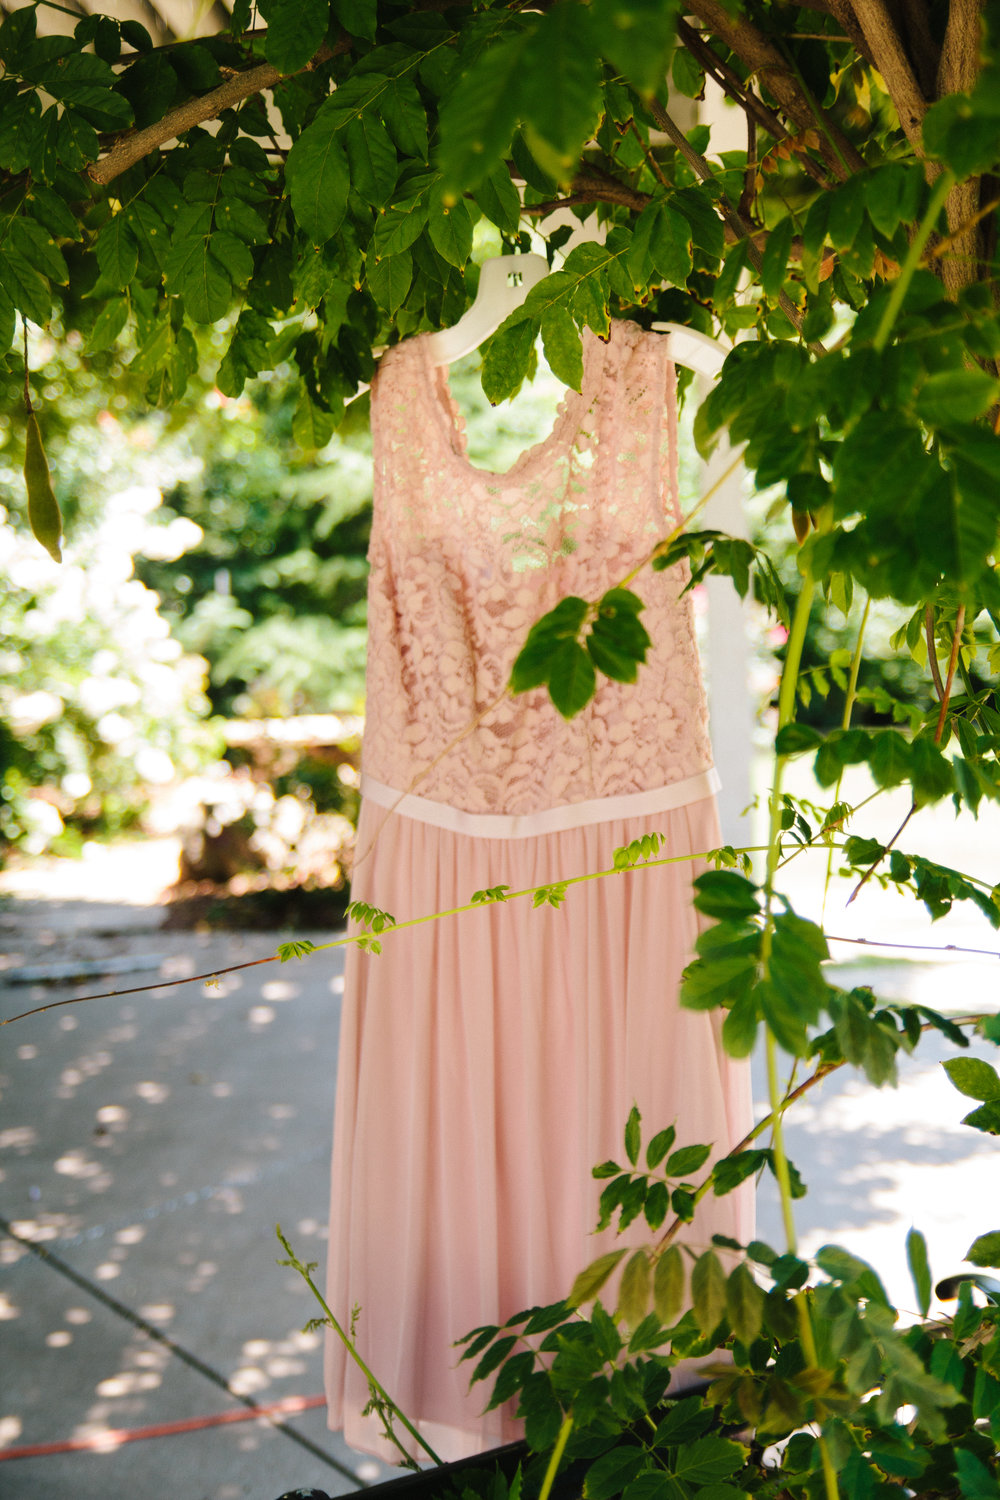 Blush Bridesmaid Dress - A Champagne + Blush Oklahoma Wedding - Meditations Event Center - From Britt's Eye View Photography